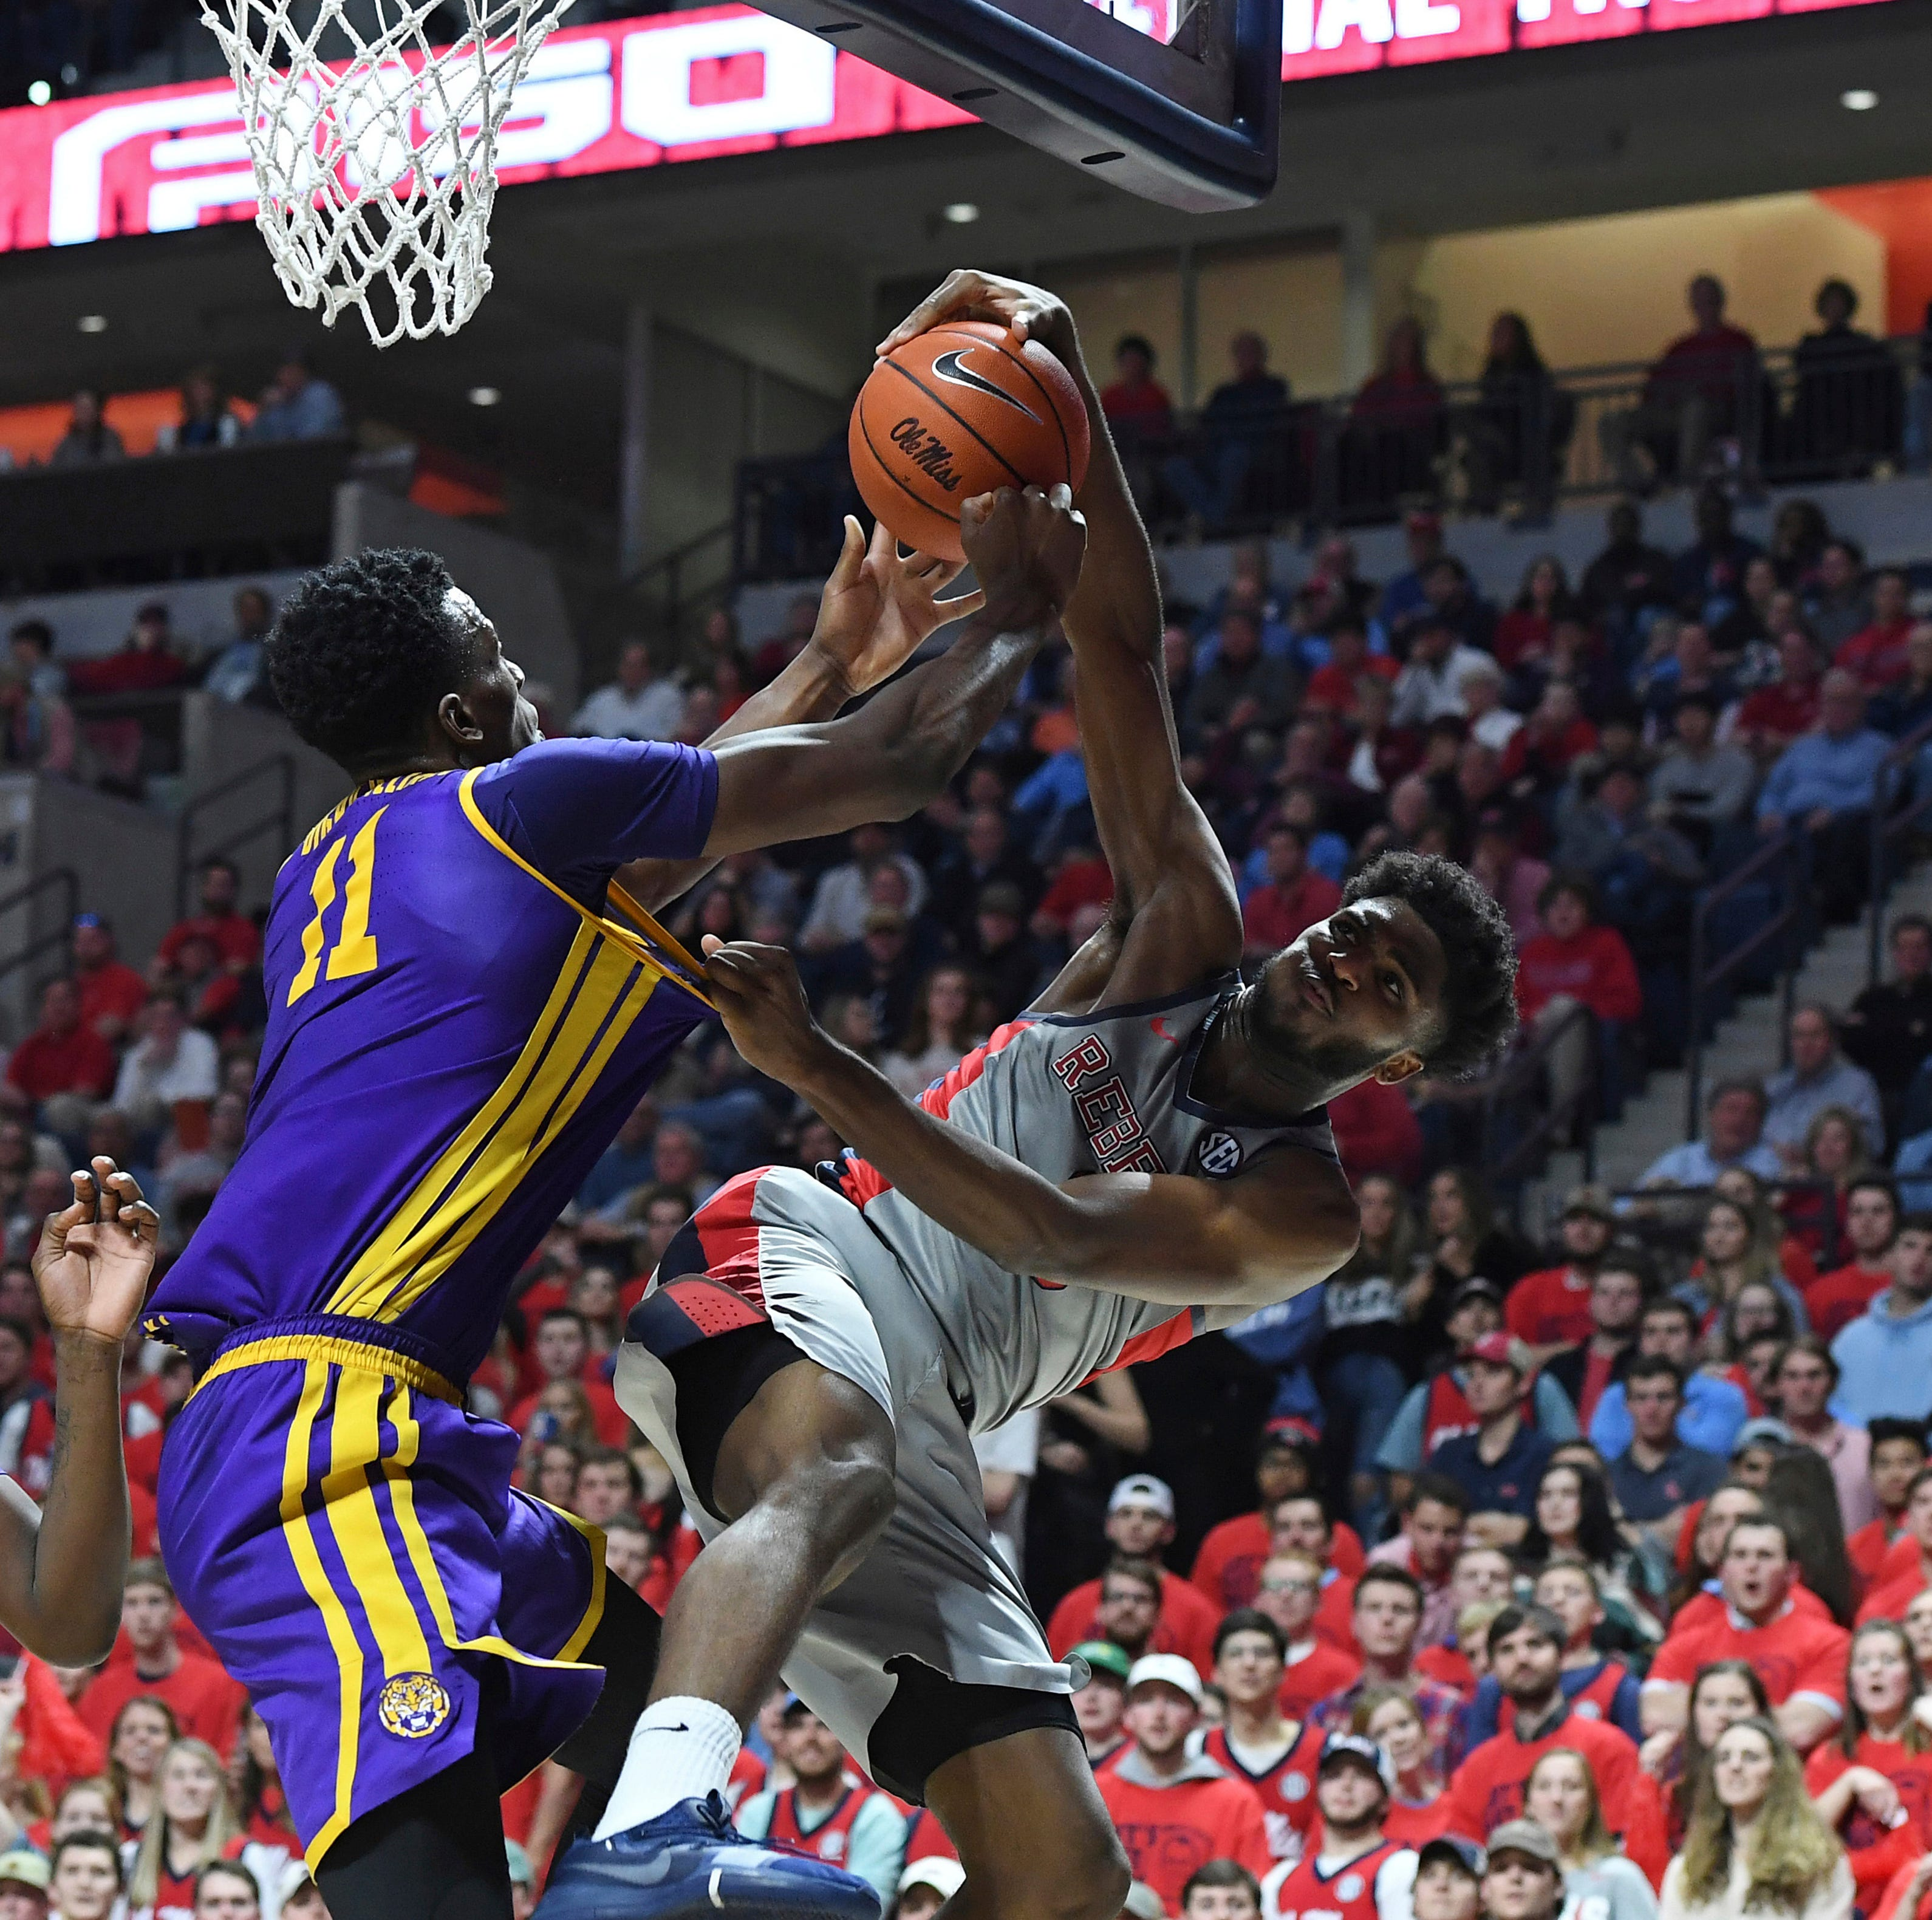 LSU cruises past No. 18 Ole Miss to improve to 3-0 in SEC play